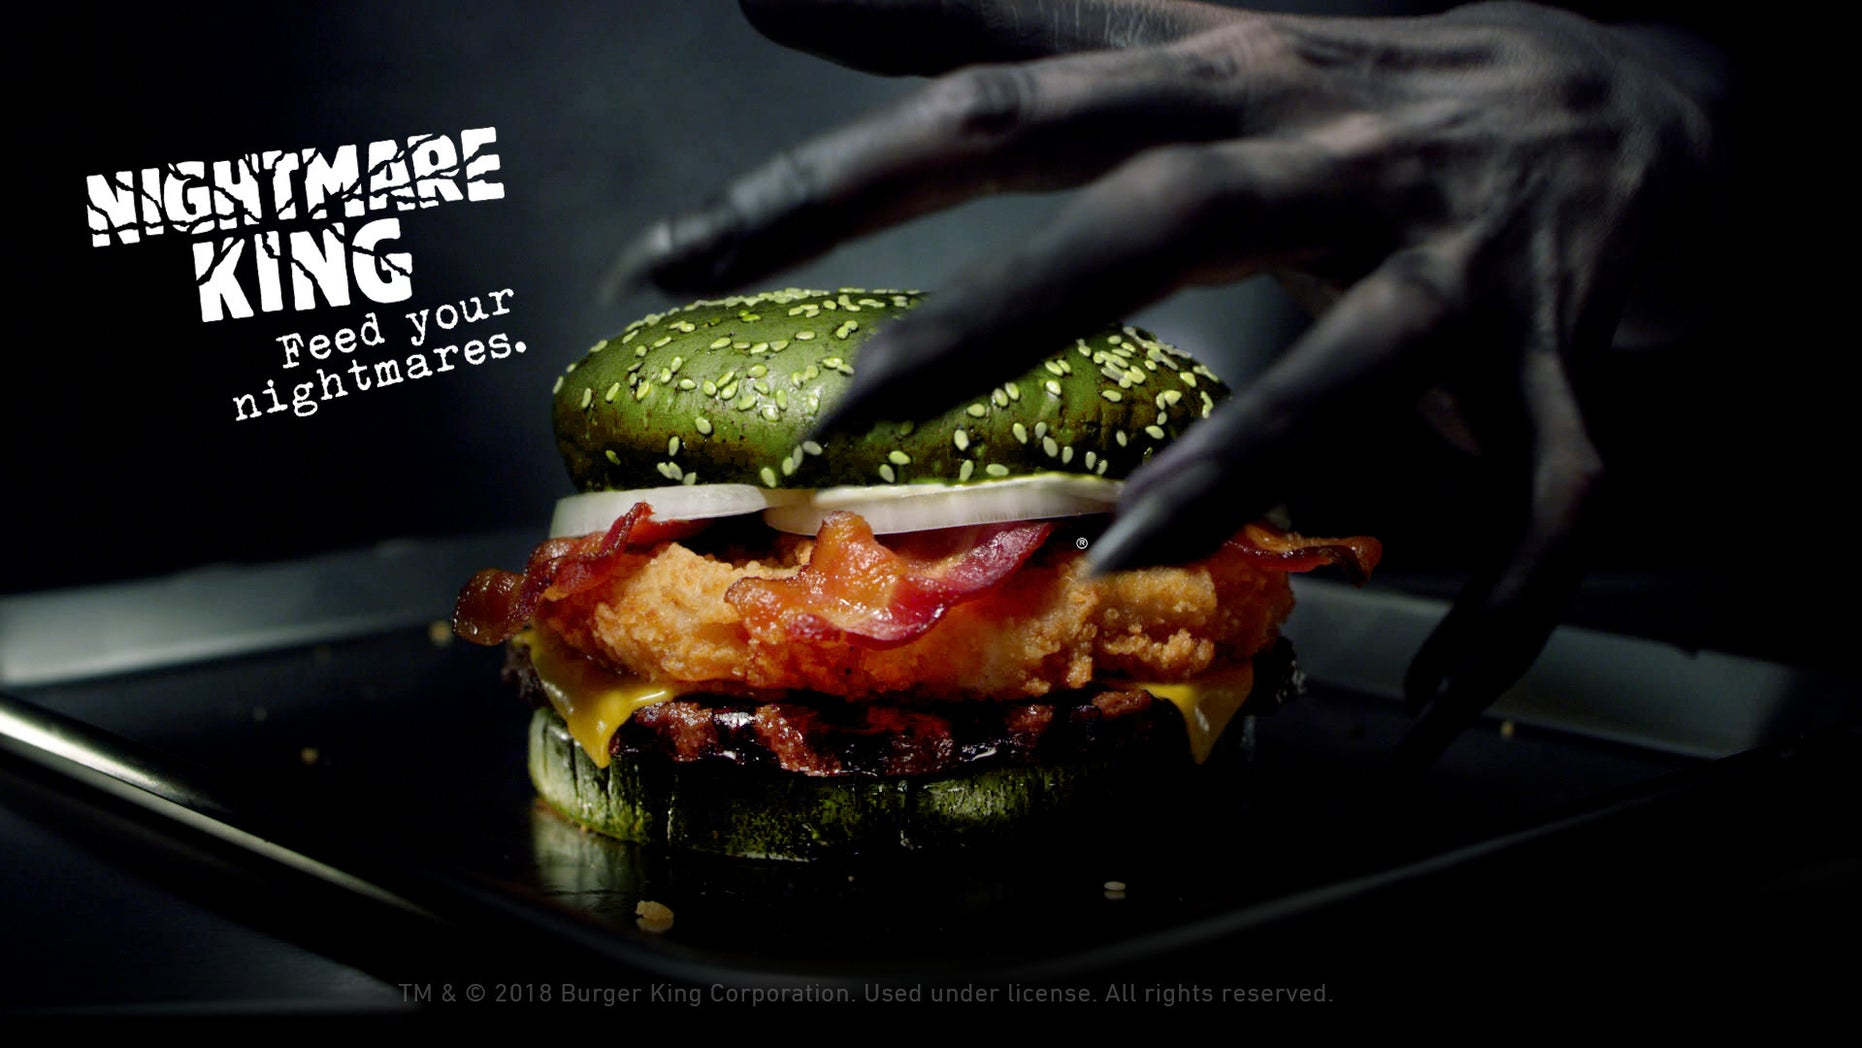 Burger King's Halloween Burger Really Induces More Nightmares